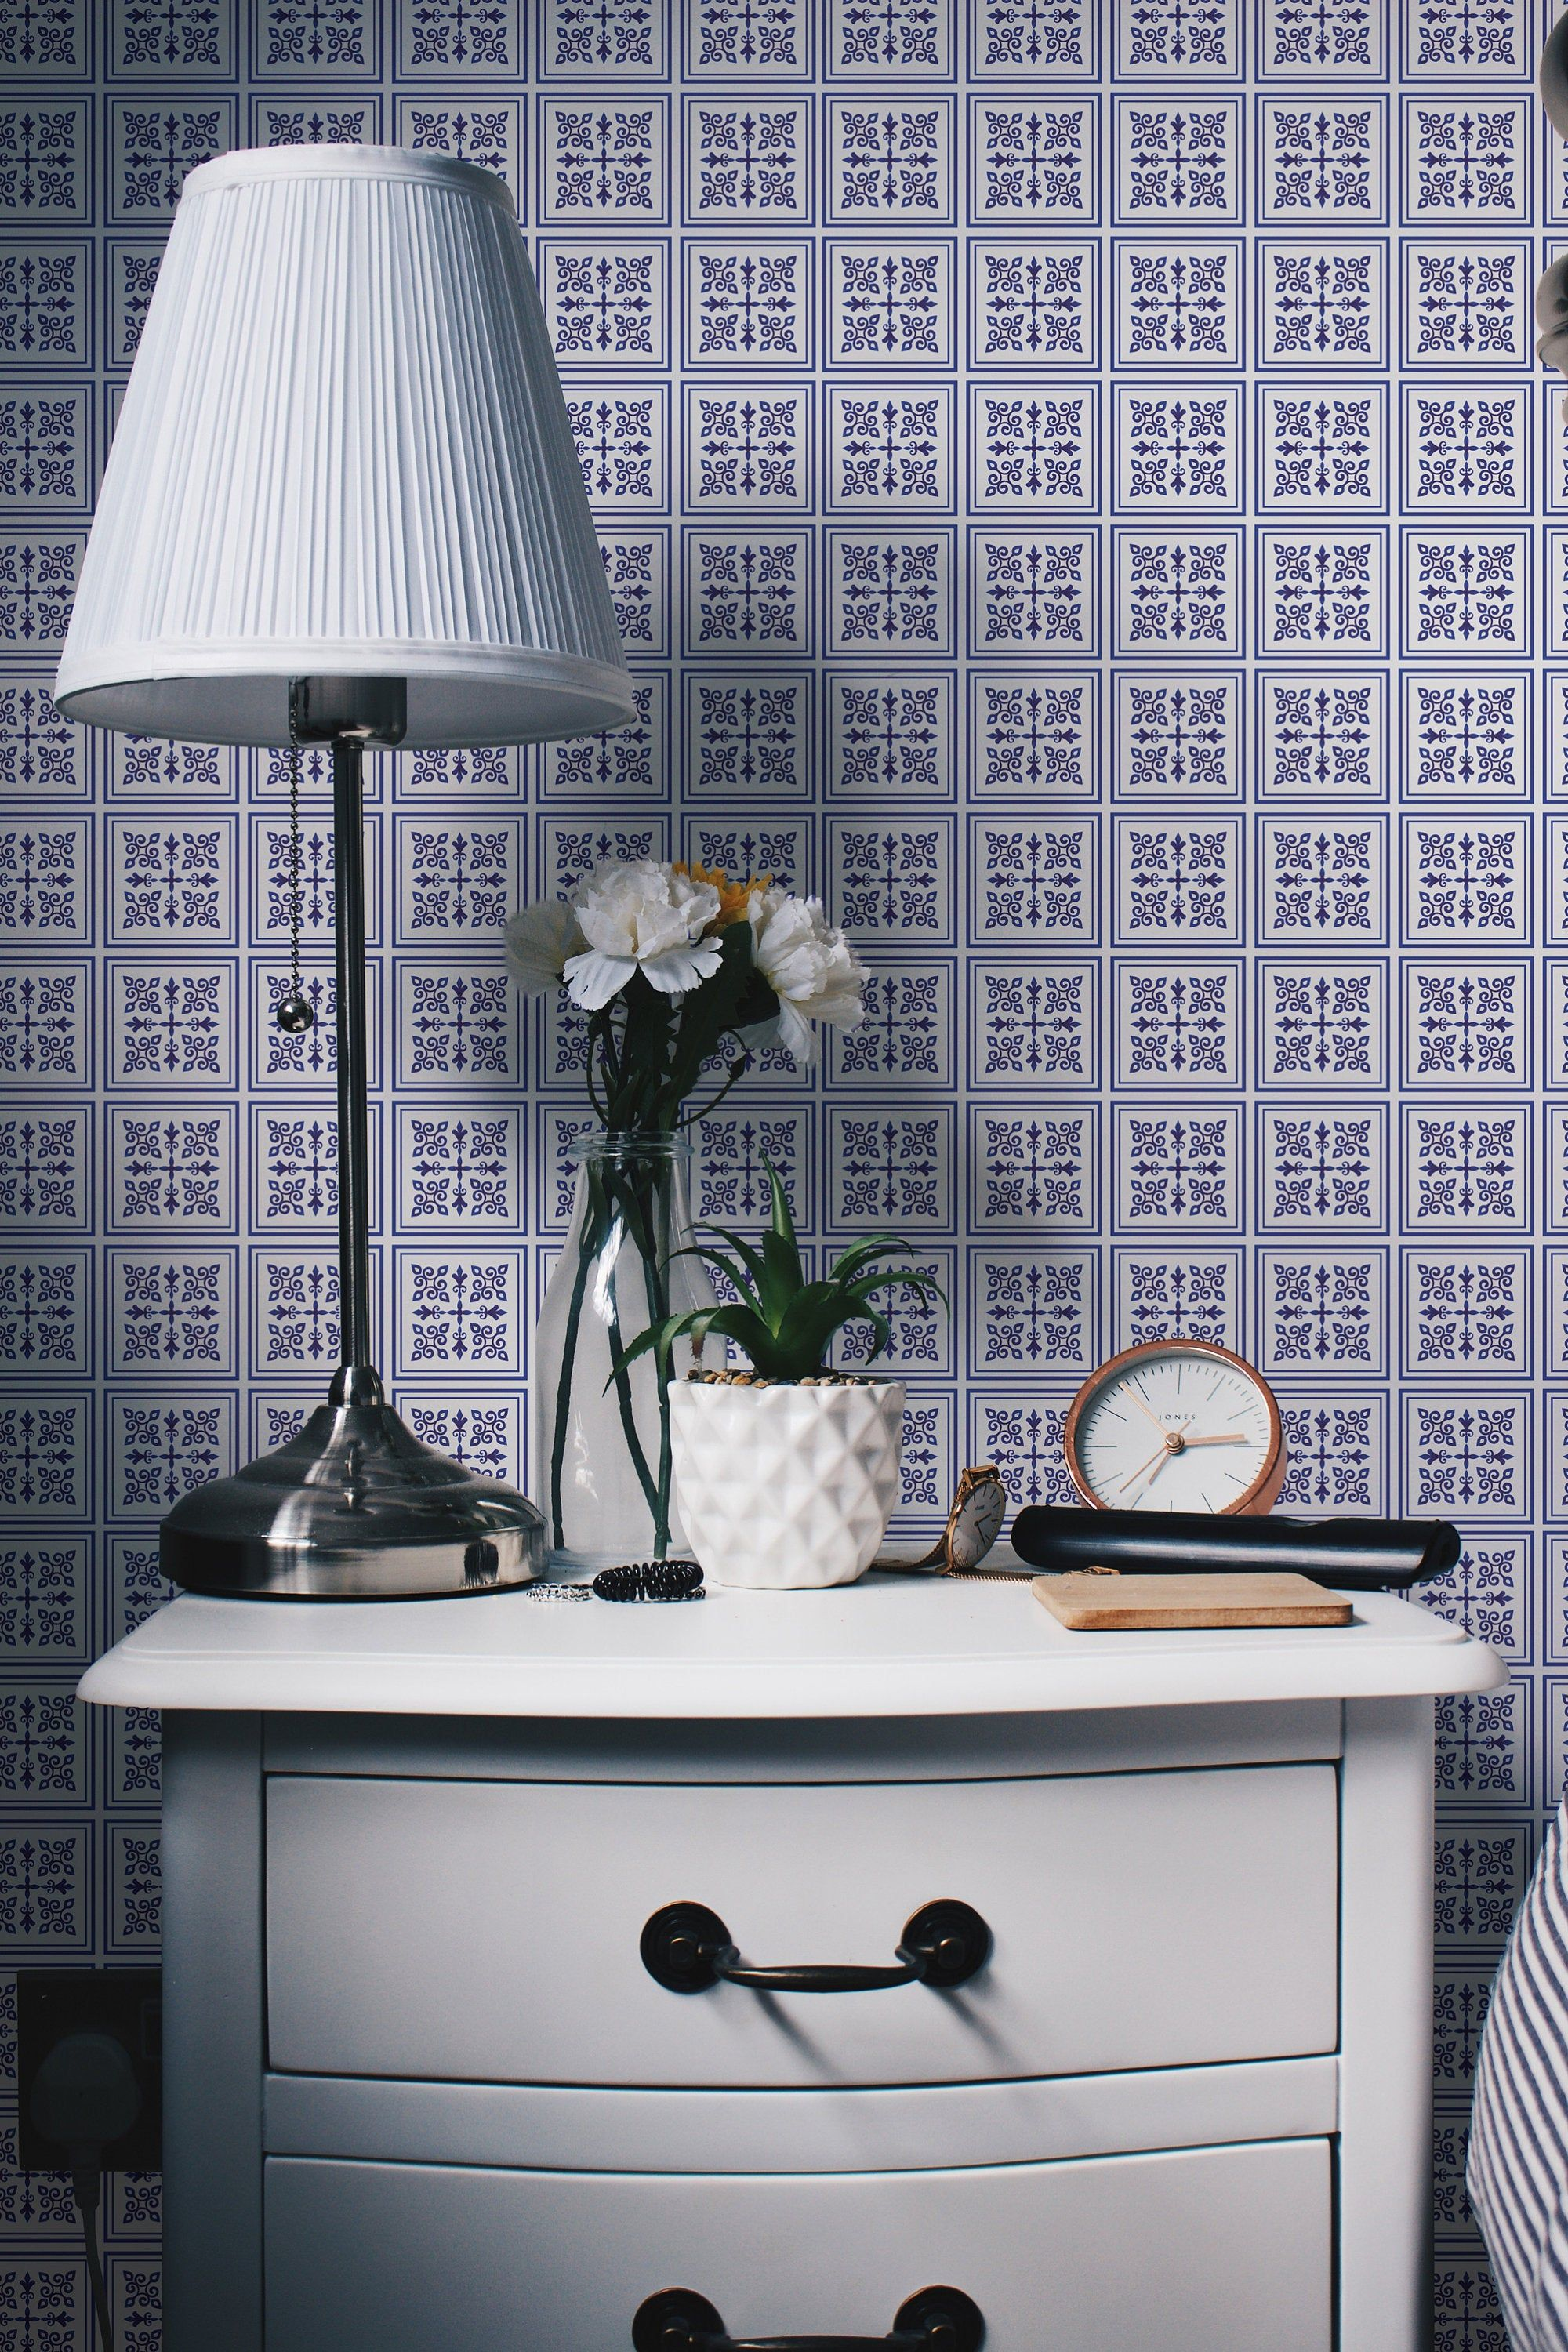 Tile Effect Removable Wallpaper Blue And White Mosaic Tiles Etsy White Mosaic Tiles Removable Wallpaper Mosaic Tiles